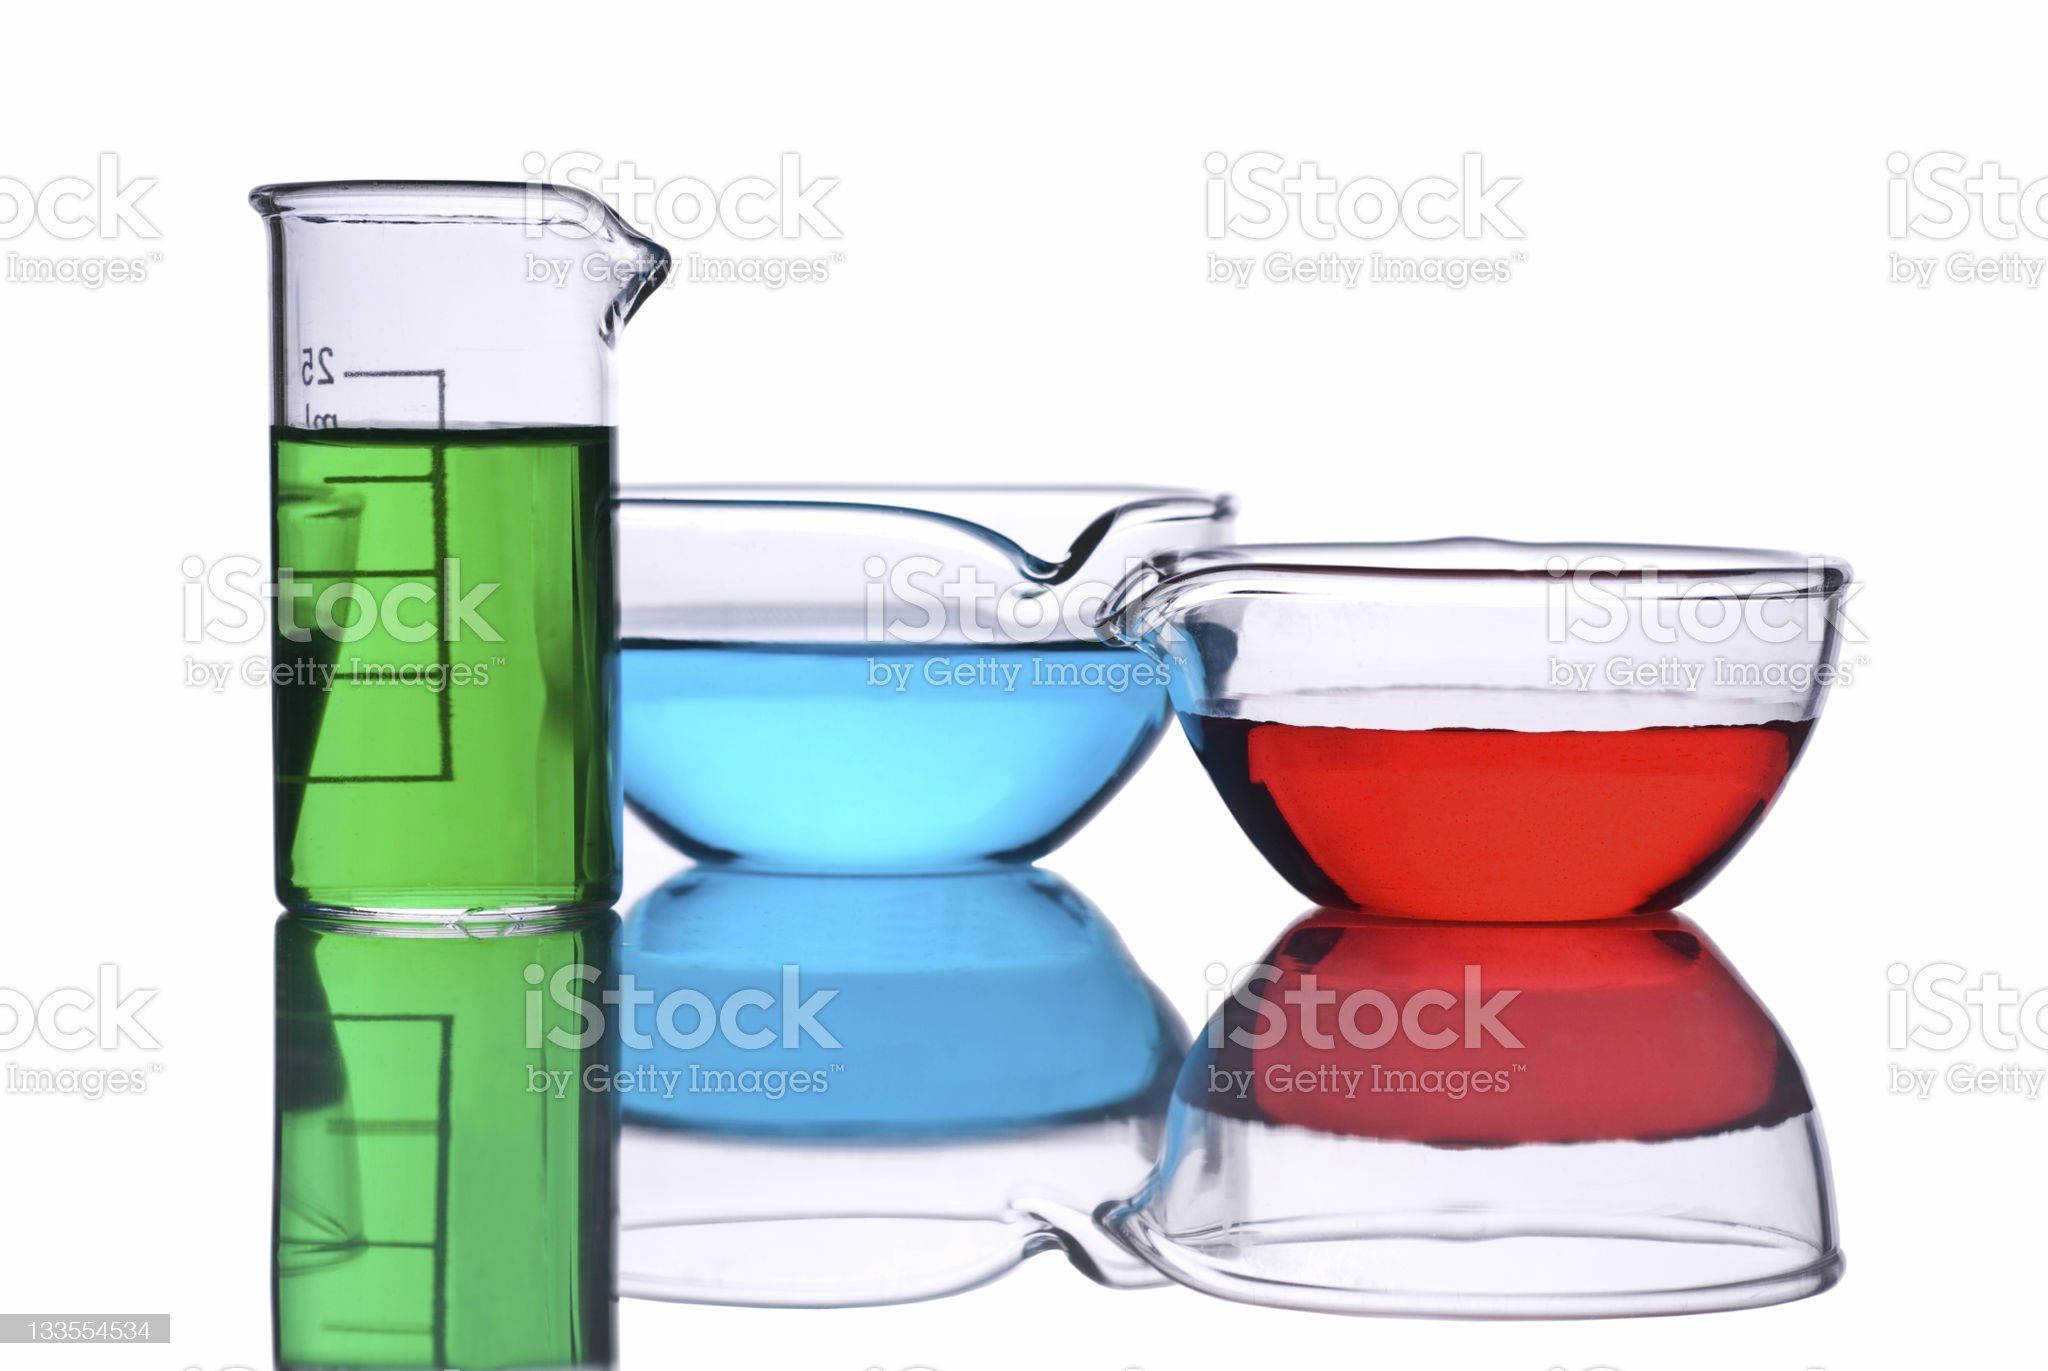 RGB solutions royalty-free stock photo